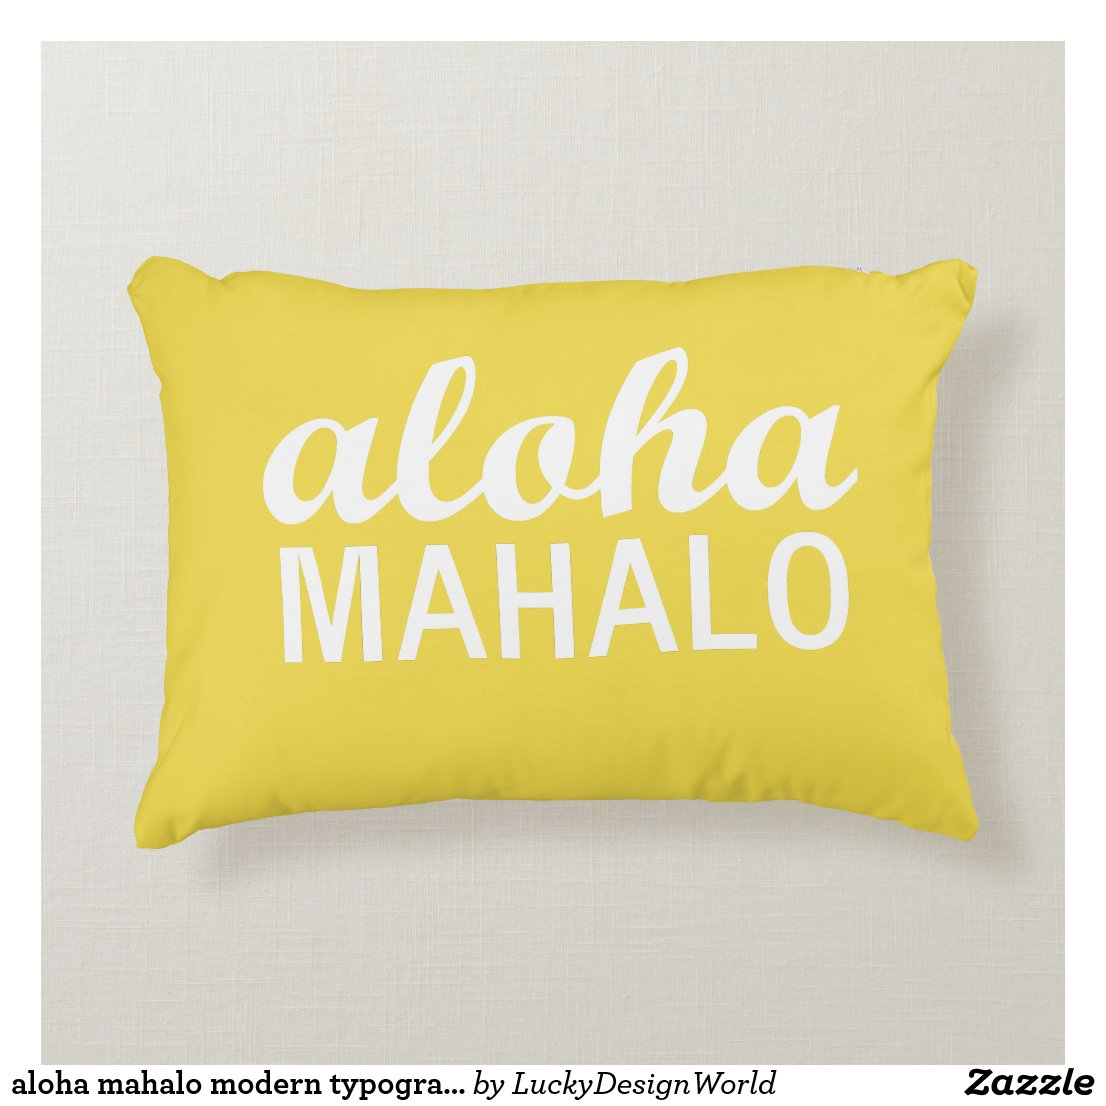 aloha mahalo modern typography yellow accent pillow